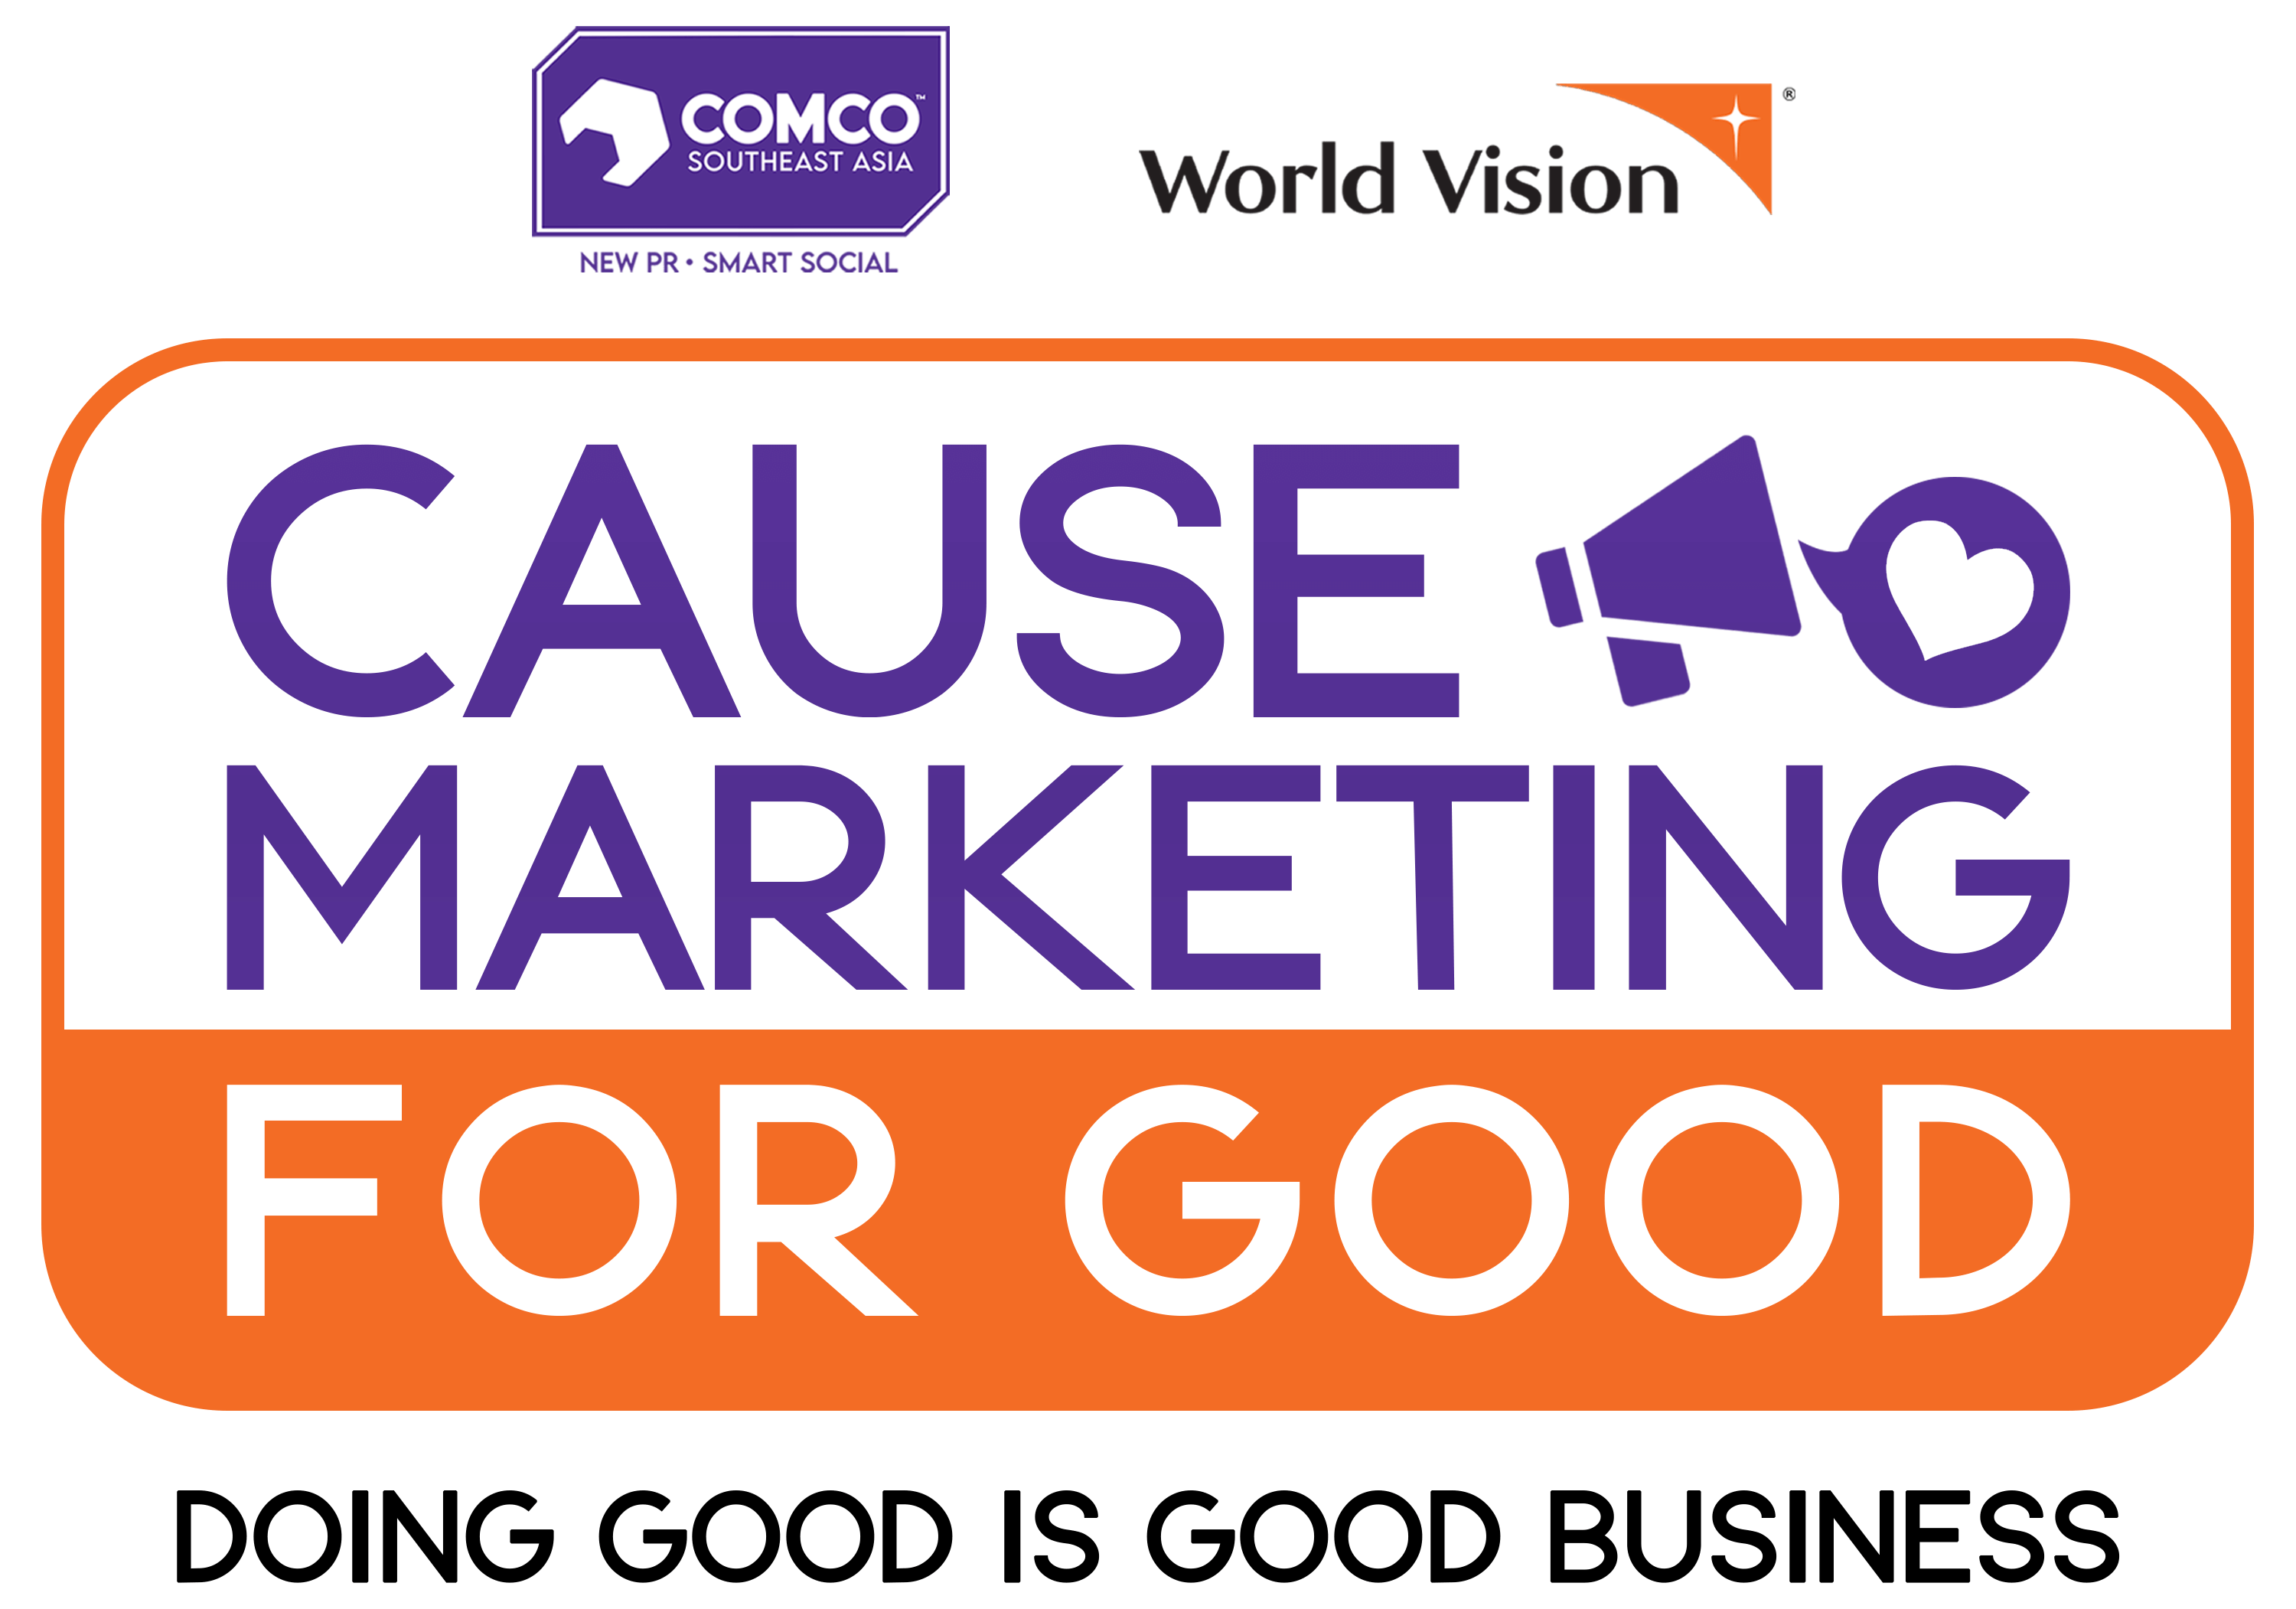 World Vision ComCo Southeast Asia - Cause Marketing for Good Logo